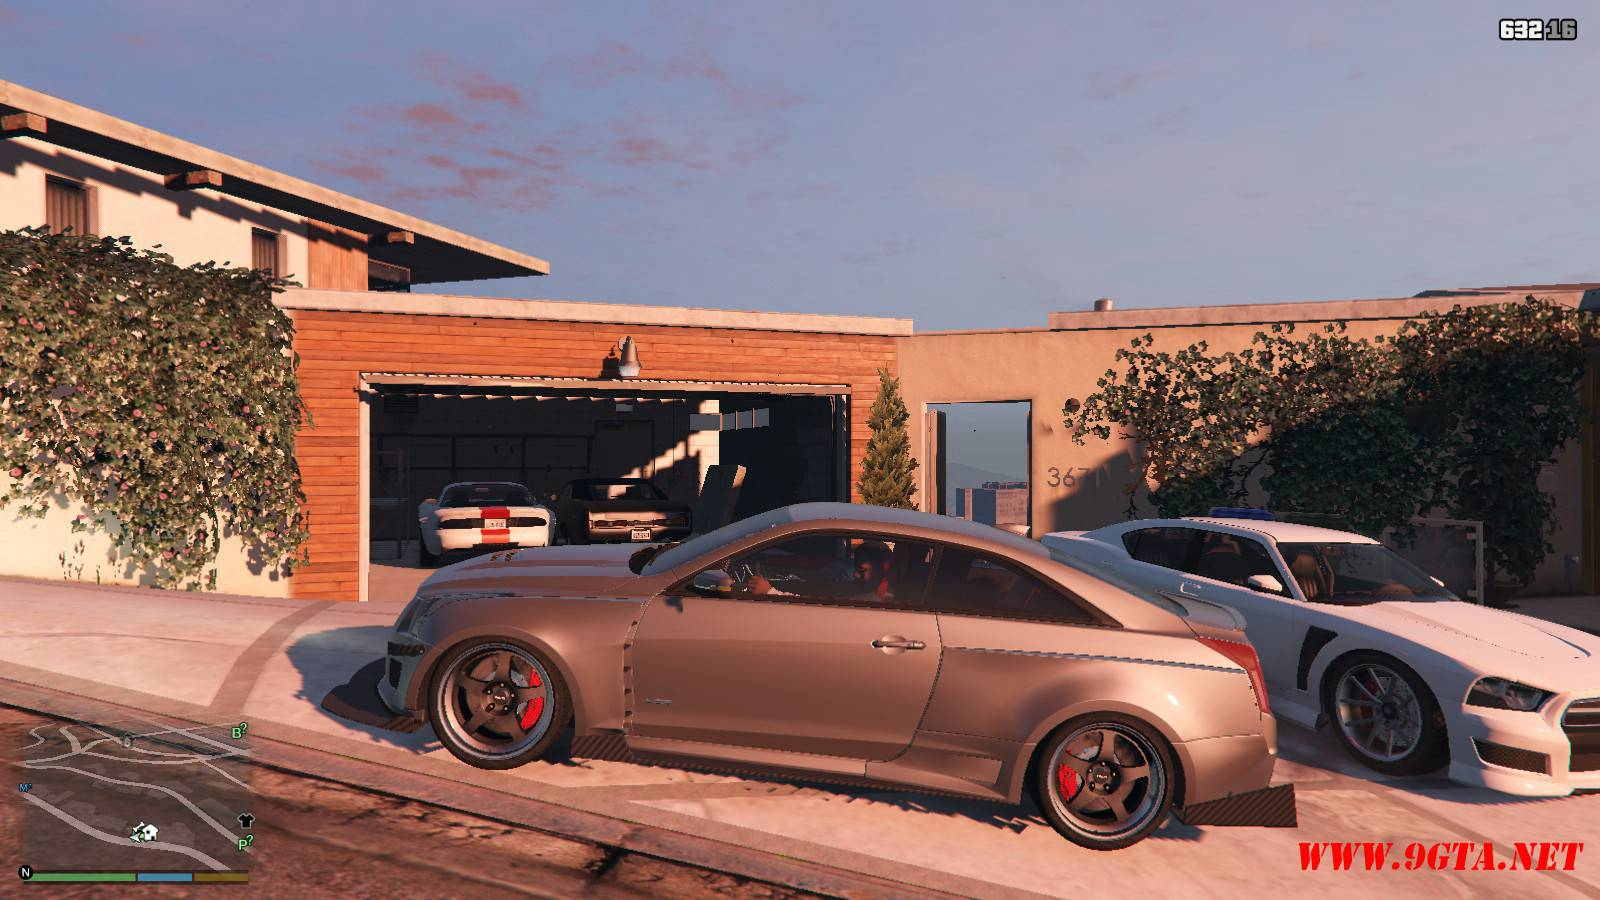 2016 Cadillac ATS-V Forza Edition Mod For GTA5 (2)